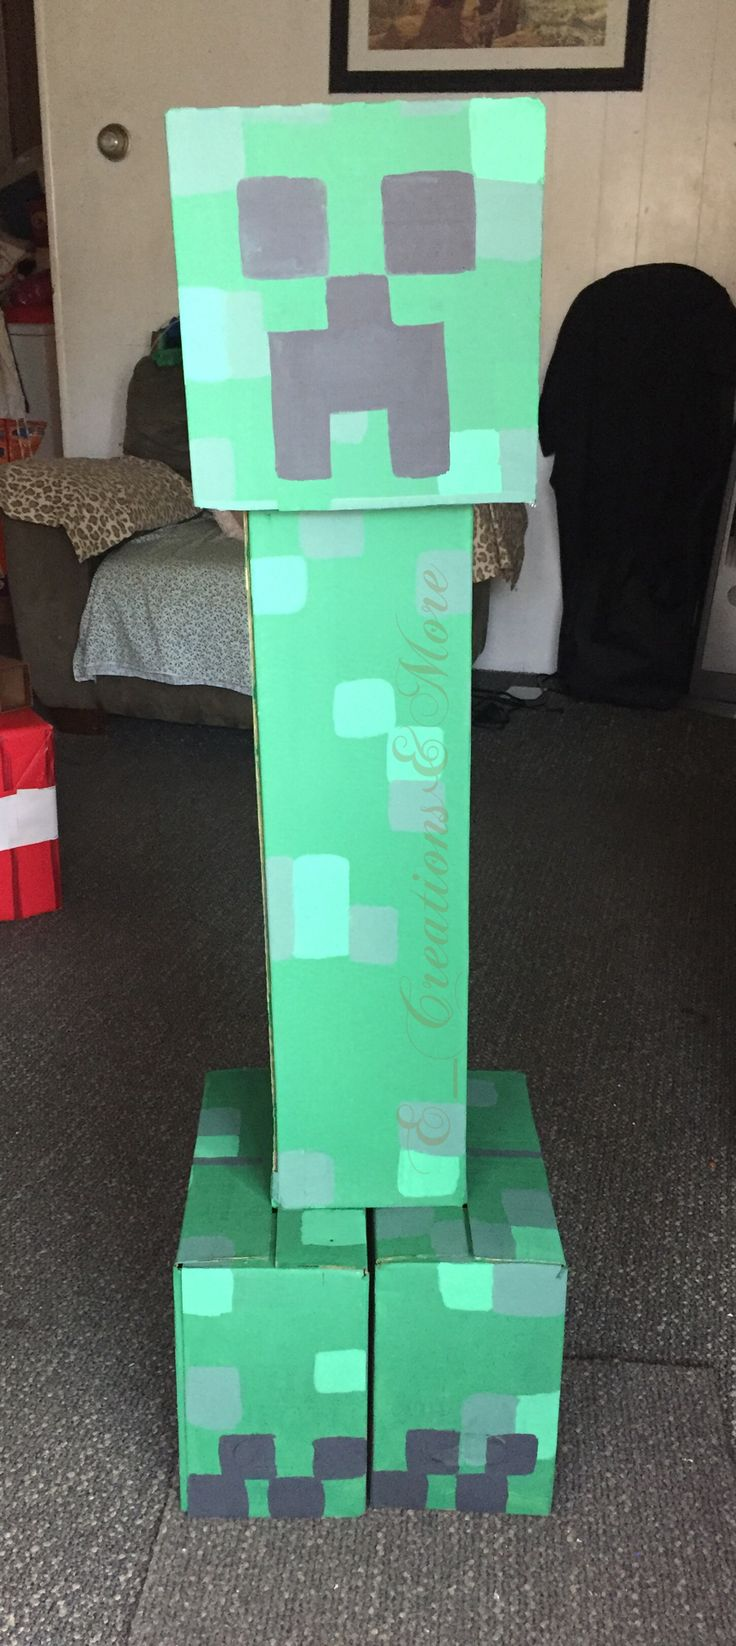 #birthday #partytheme #minecraft #decorations #centerpieces #photoprops #pixels #cardboard #recycling